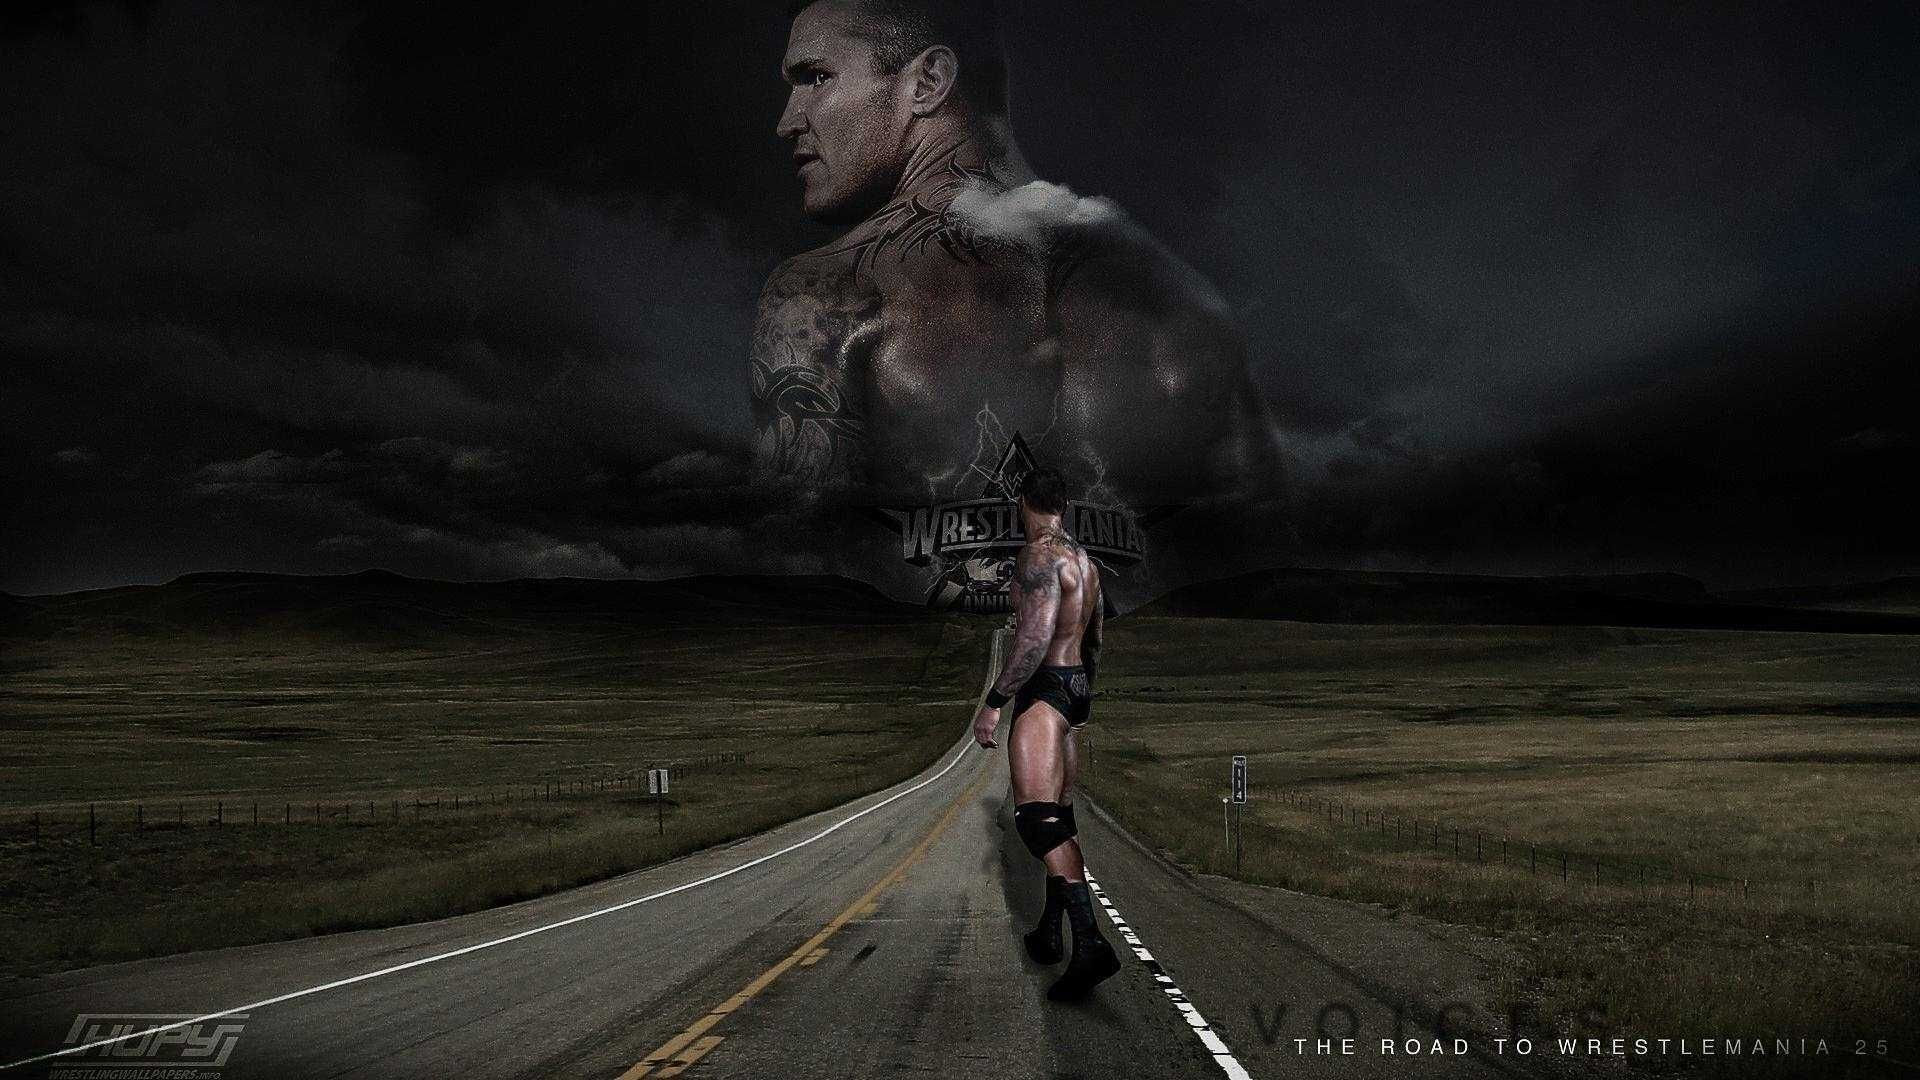 Randy Orton Hd Wallpapers Free Download WWE HD WALLPAPER FREE